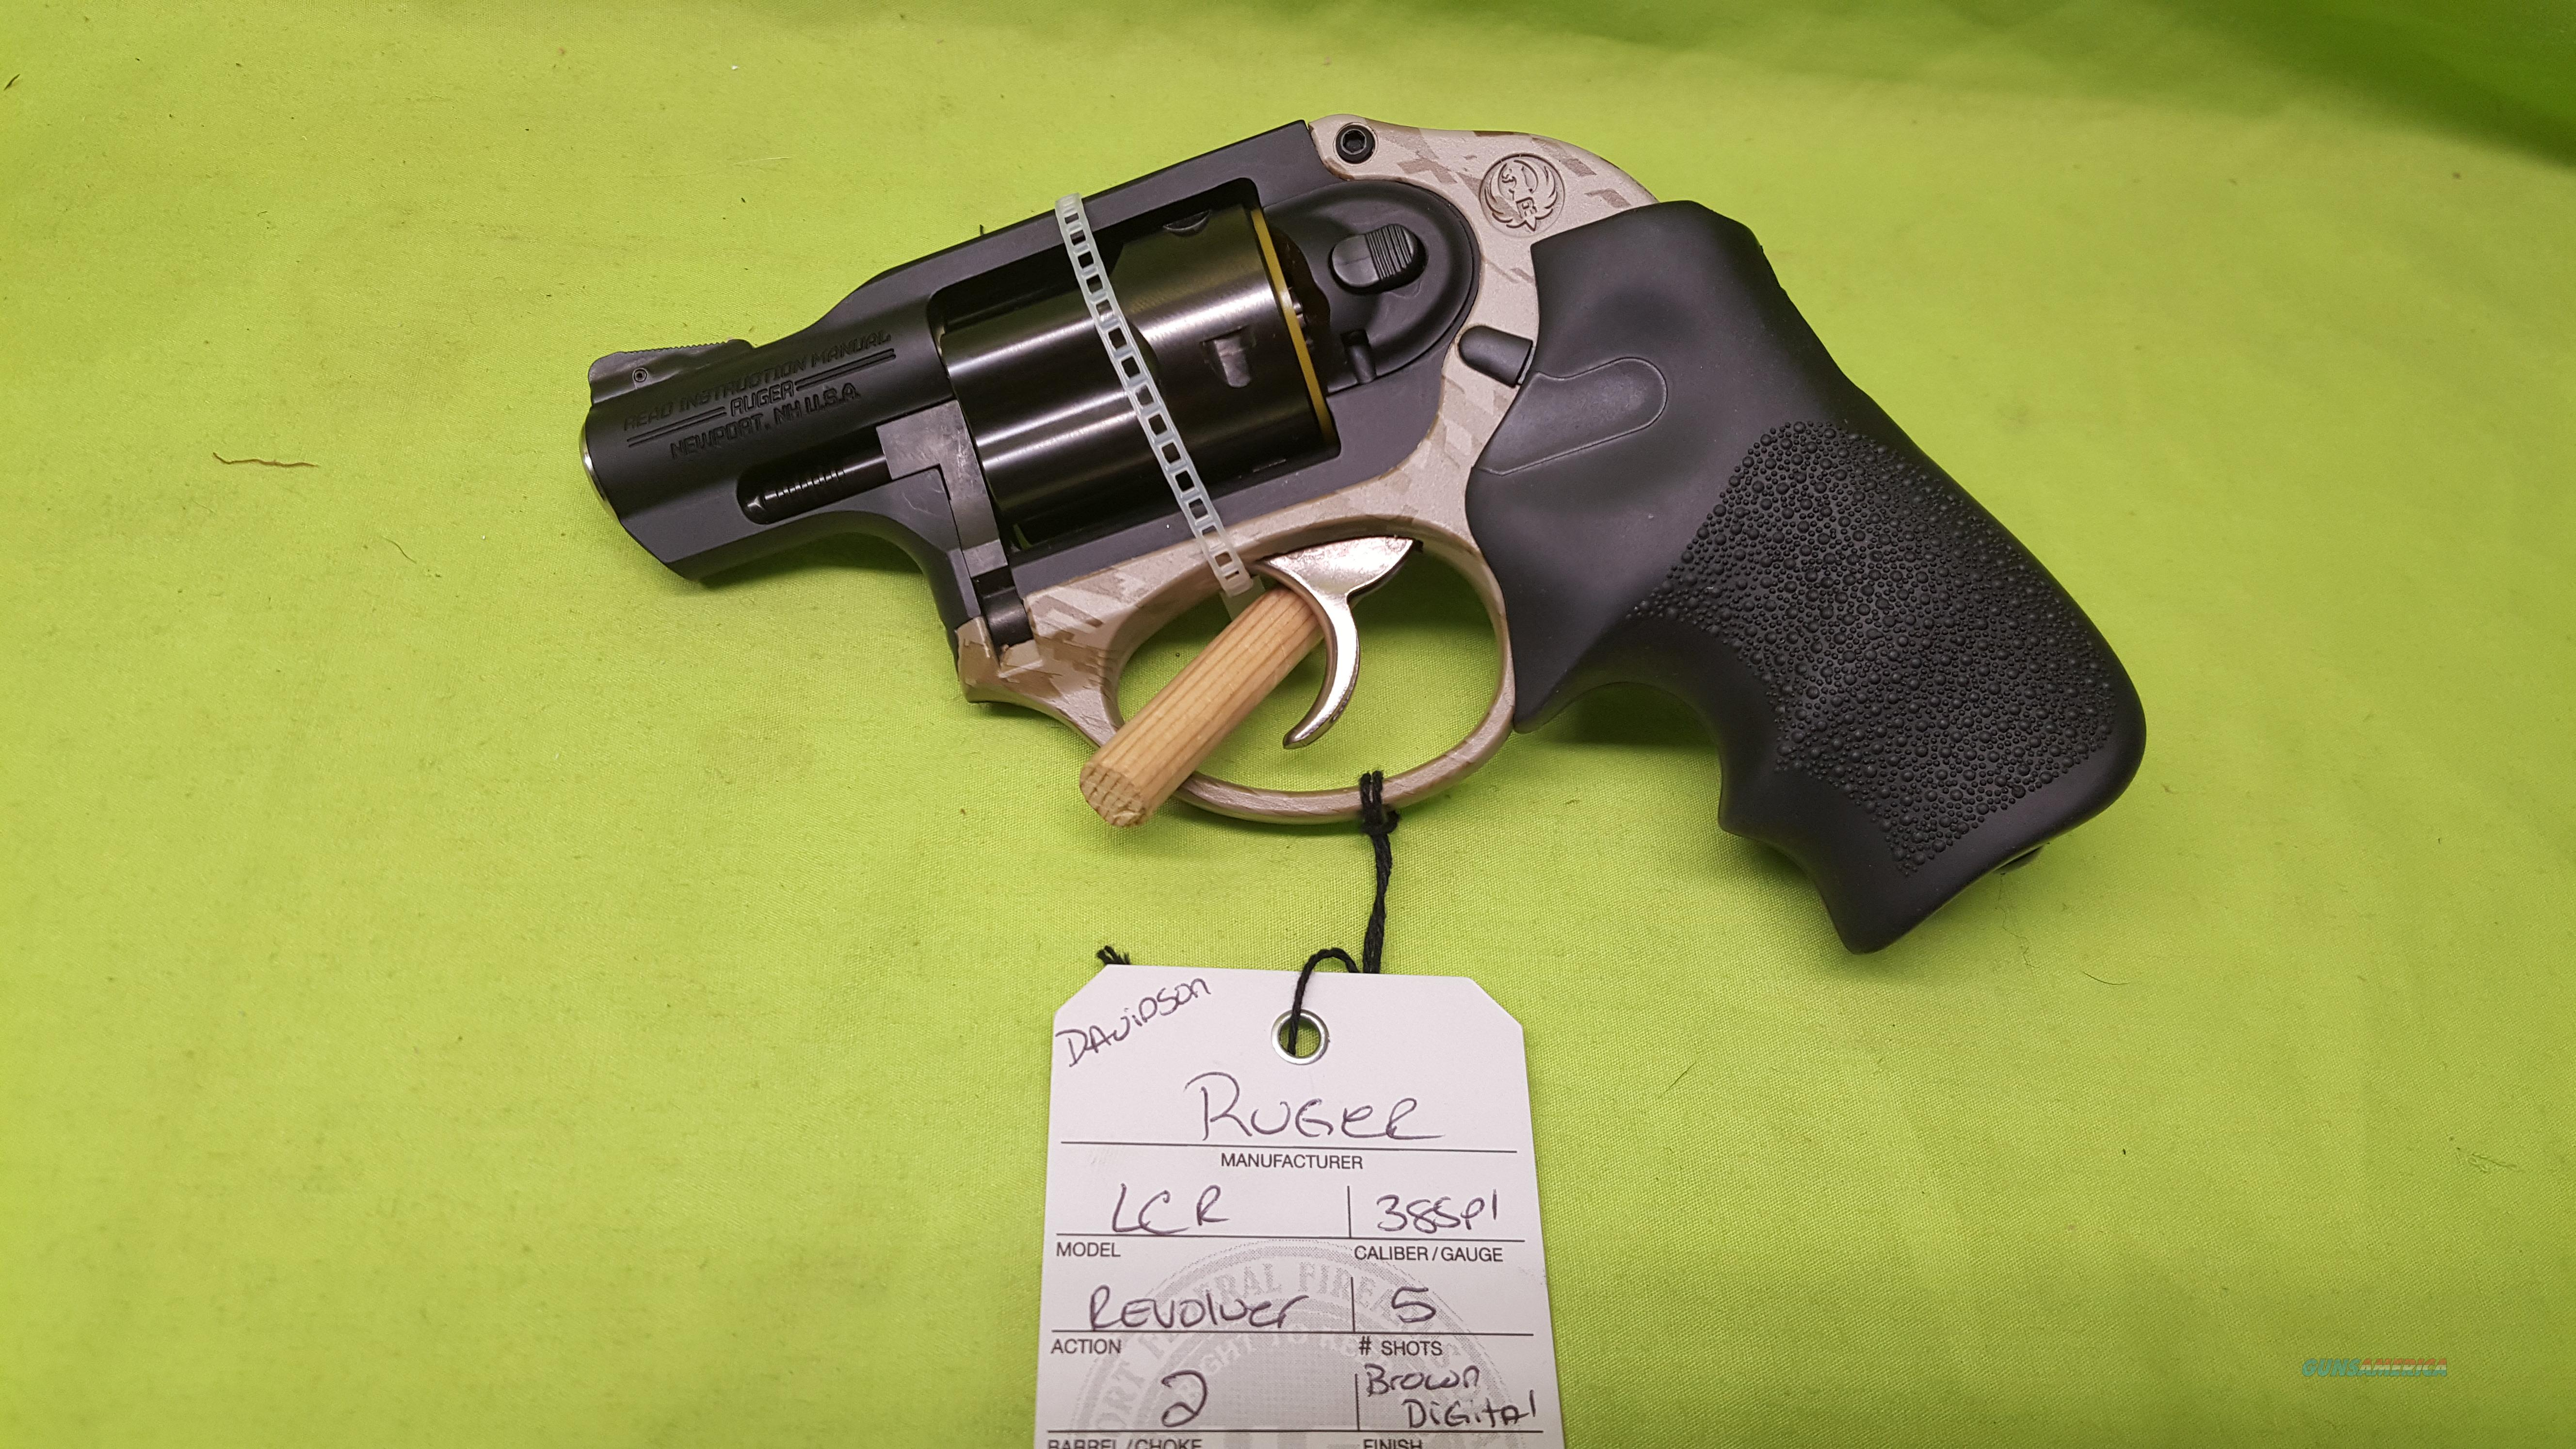 RUGER LCR 38 38SPL BROWN DIGITAL REVOLVER 5RD 5426  Guns > Pistols > Ruger Double Action Revolver > LCR